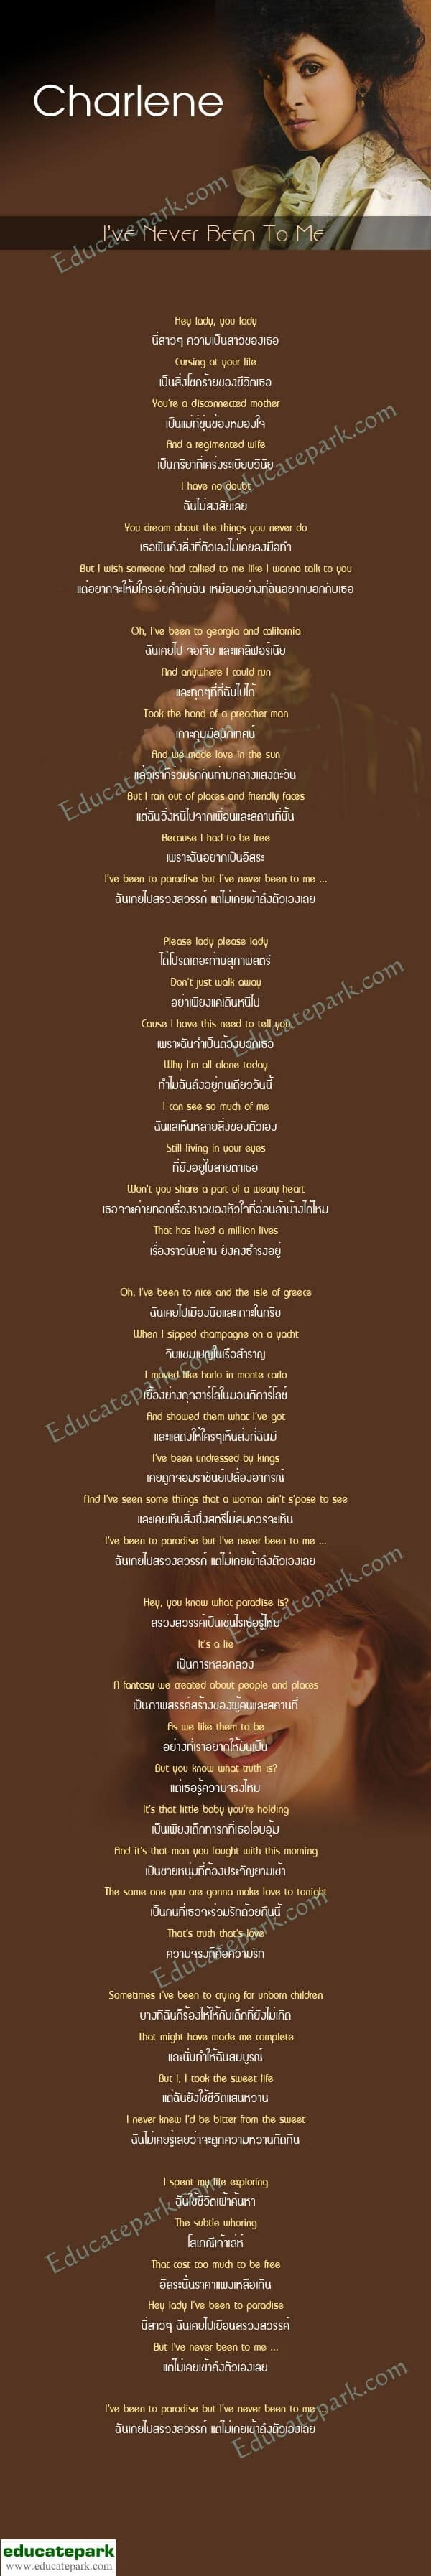 แปลเพลง I've Never Been To Me - Charlene